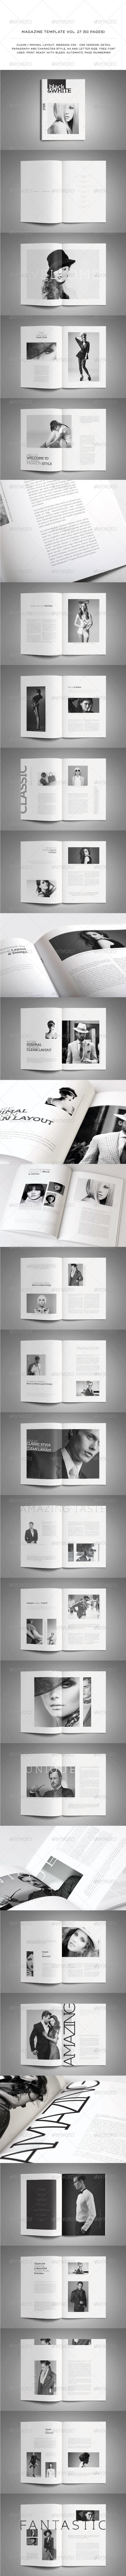 GraphicRiver A4 Letter 50 Pages Mgz Vol 27 7169144